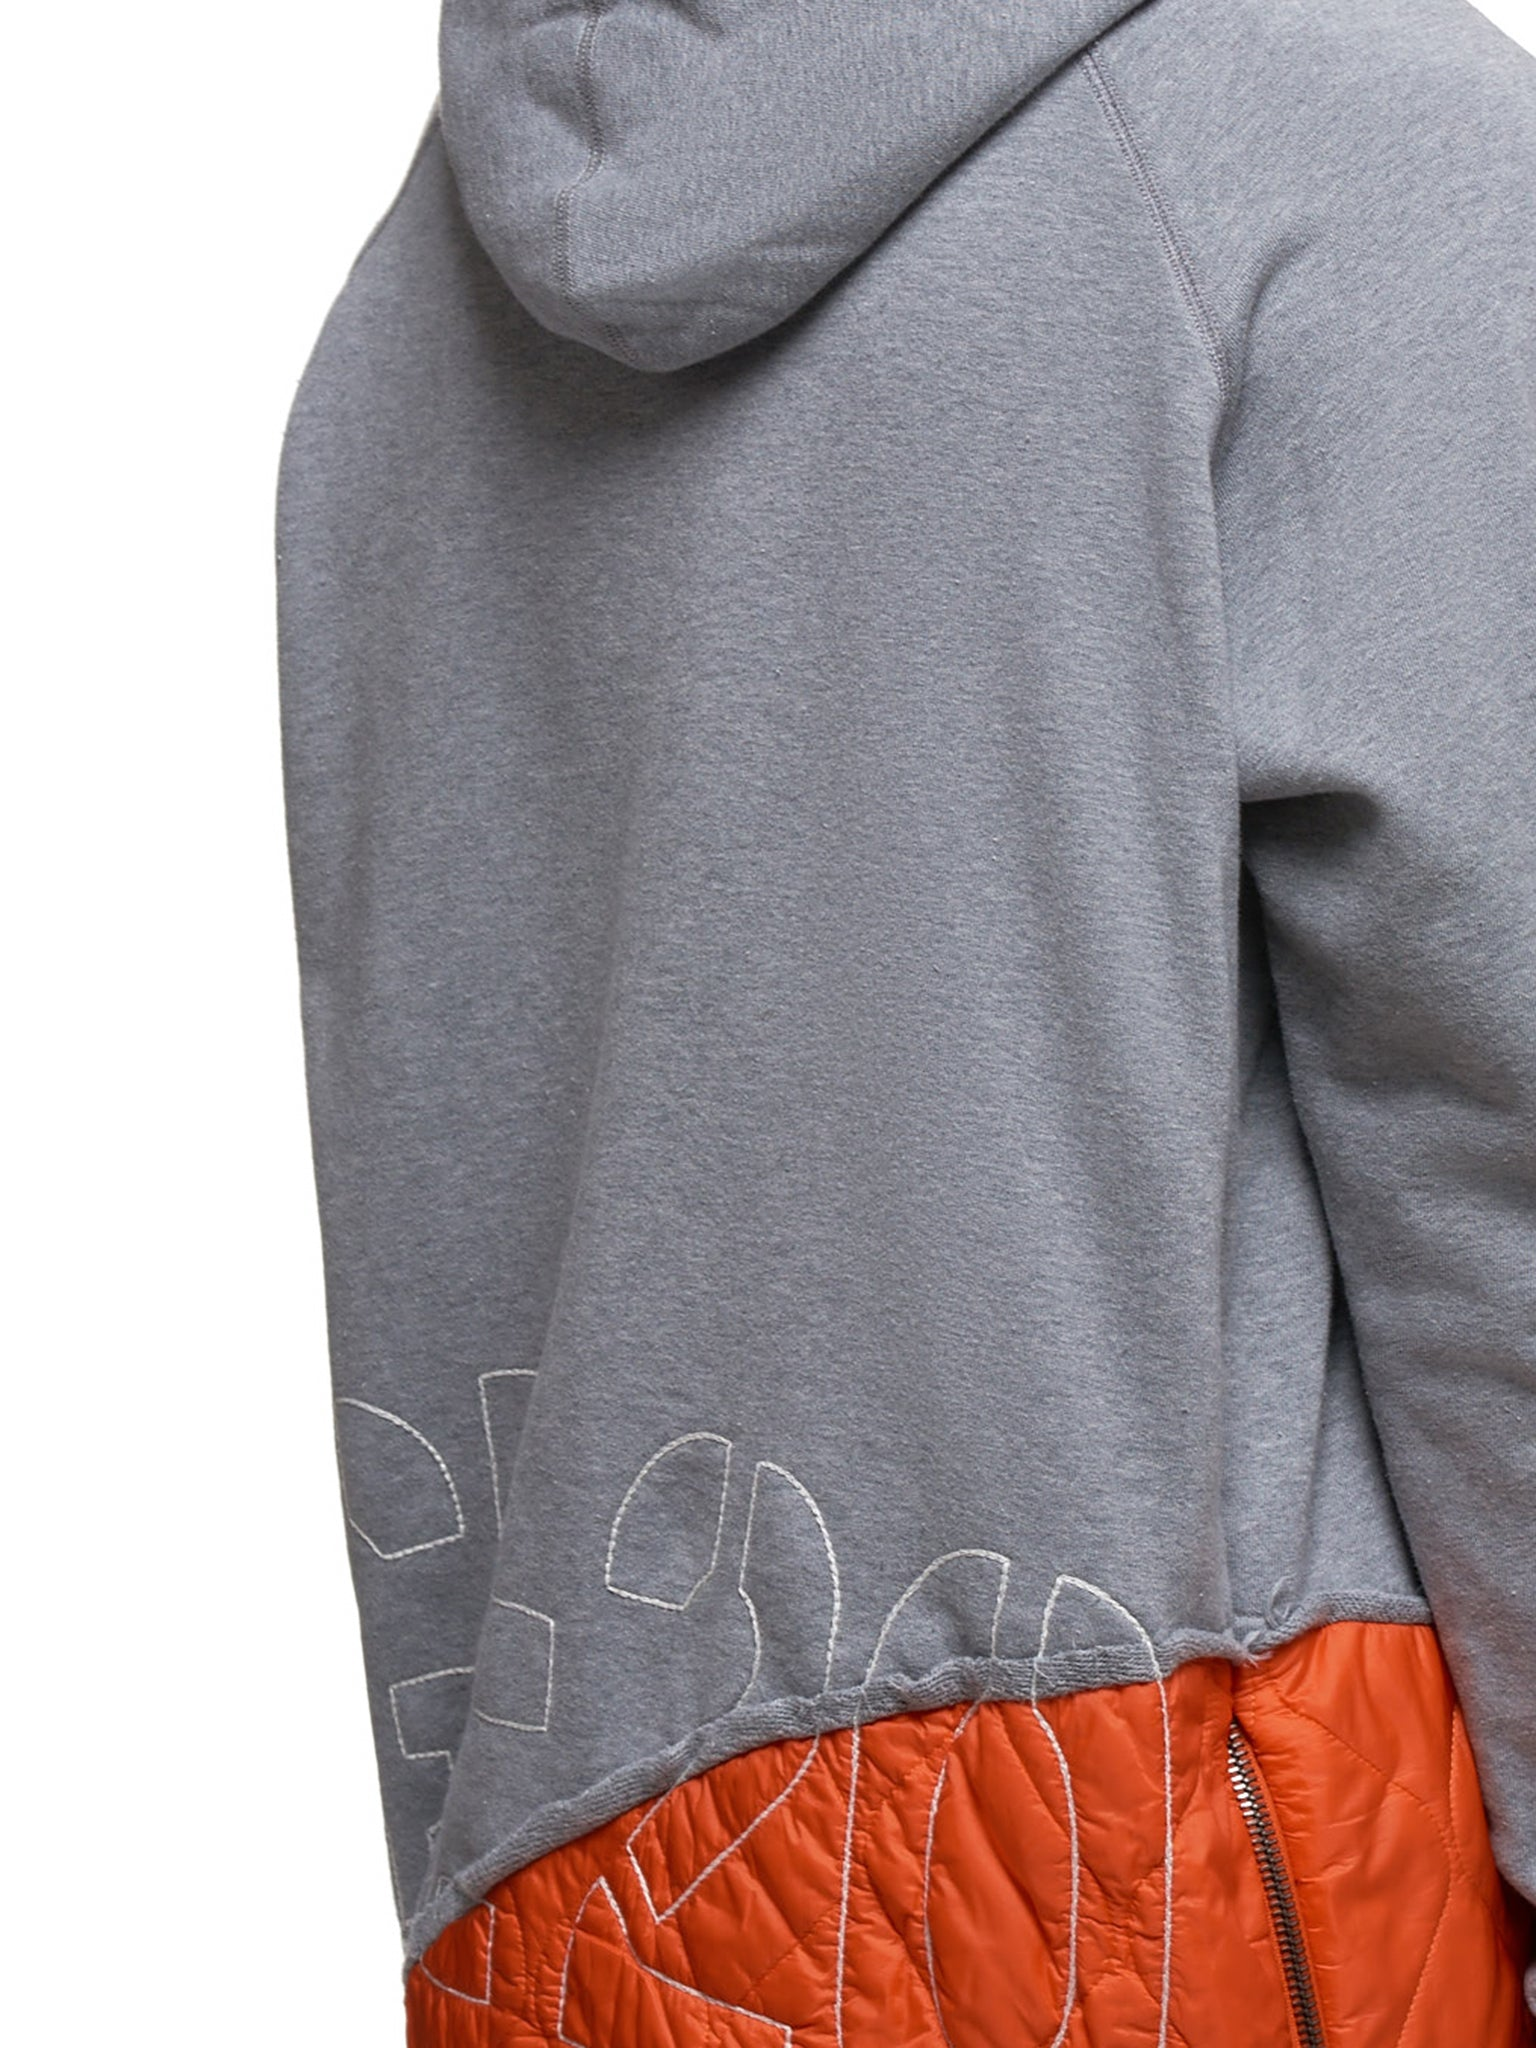 Paul & Shark by Greg Lauren Hoodie - Hlorenzo Detail 2